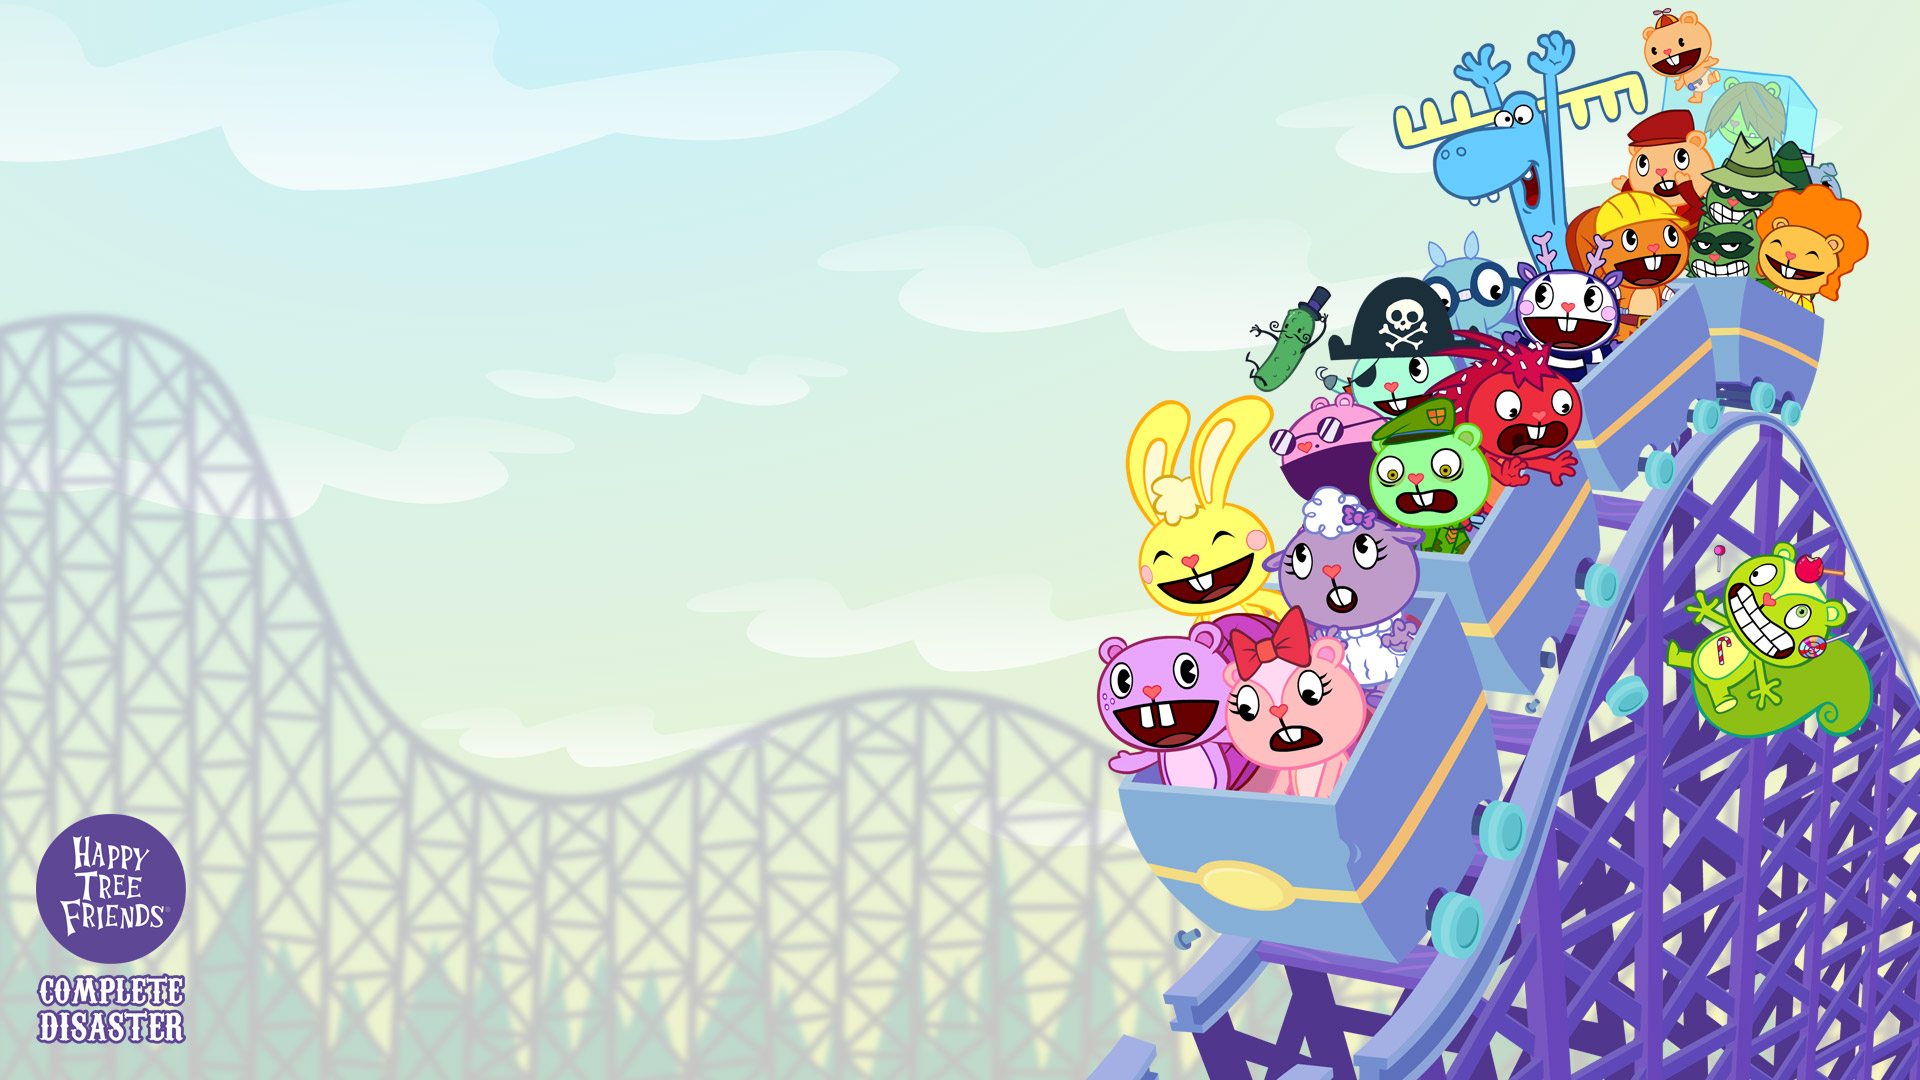 Happy Tree Friends Complete Disaster Wallpapers   Happy Tree Friends 1920x1080